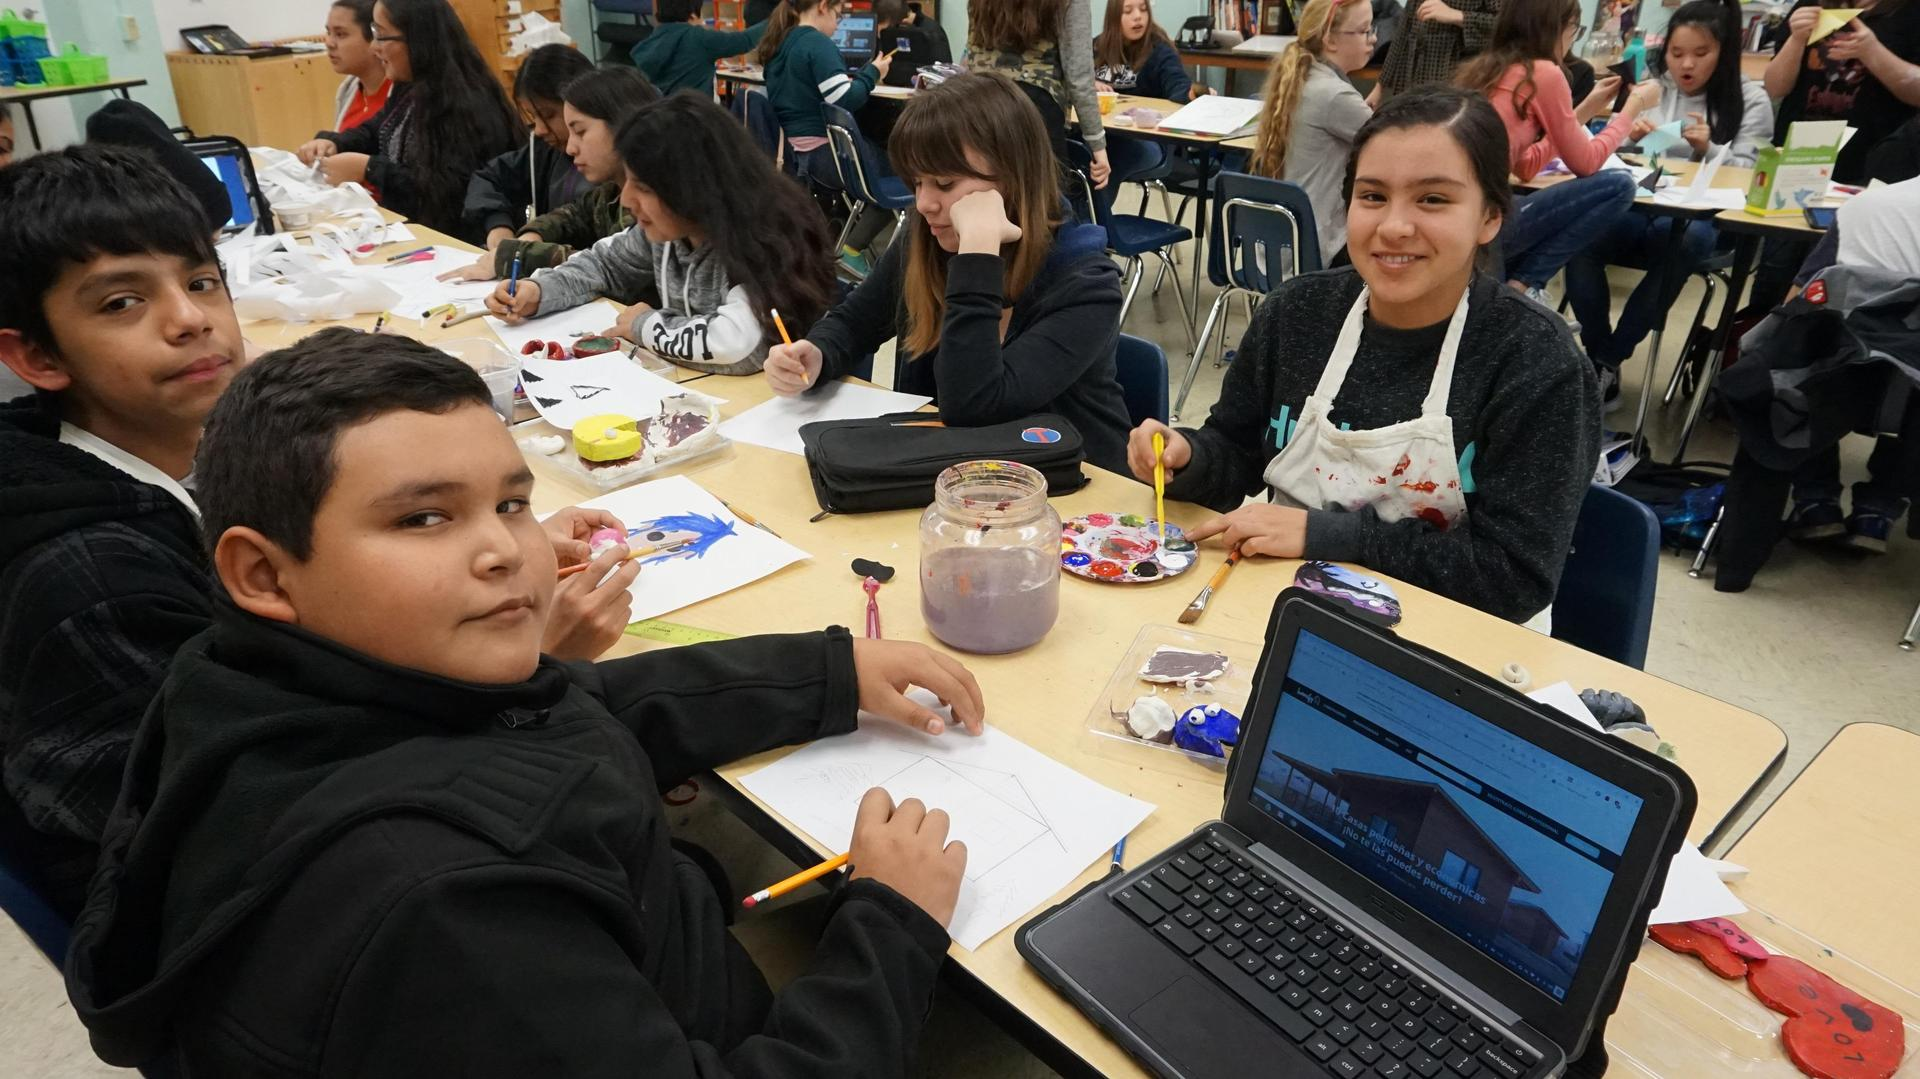 Multiple students working on art projects